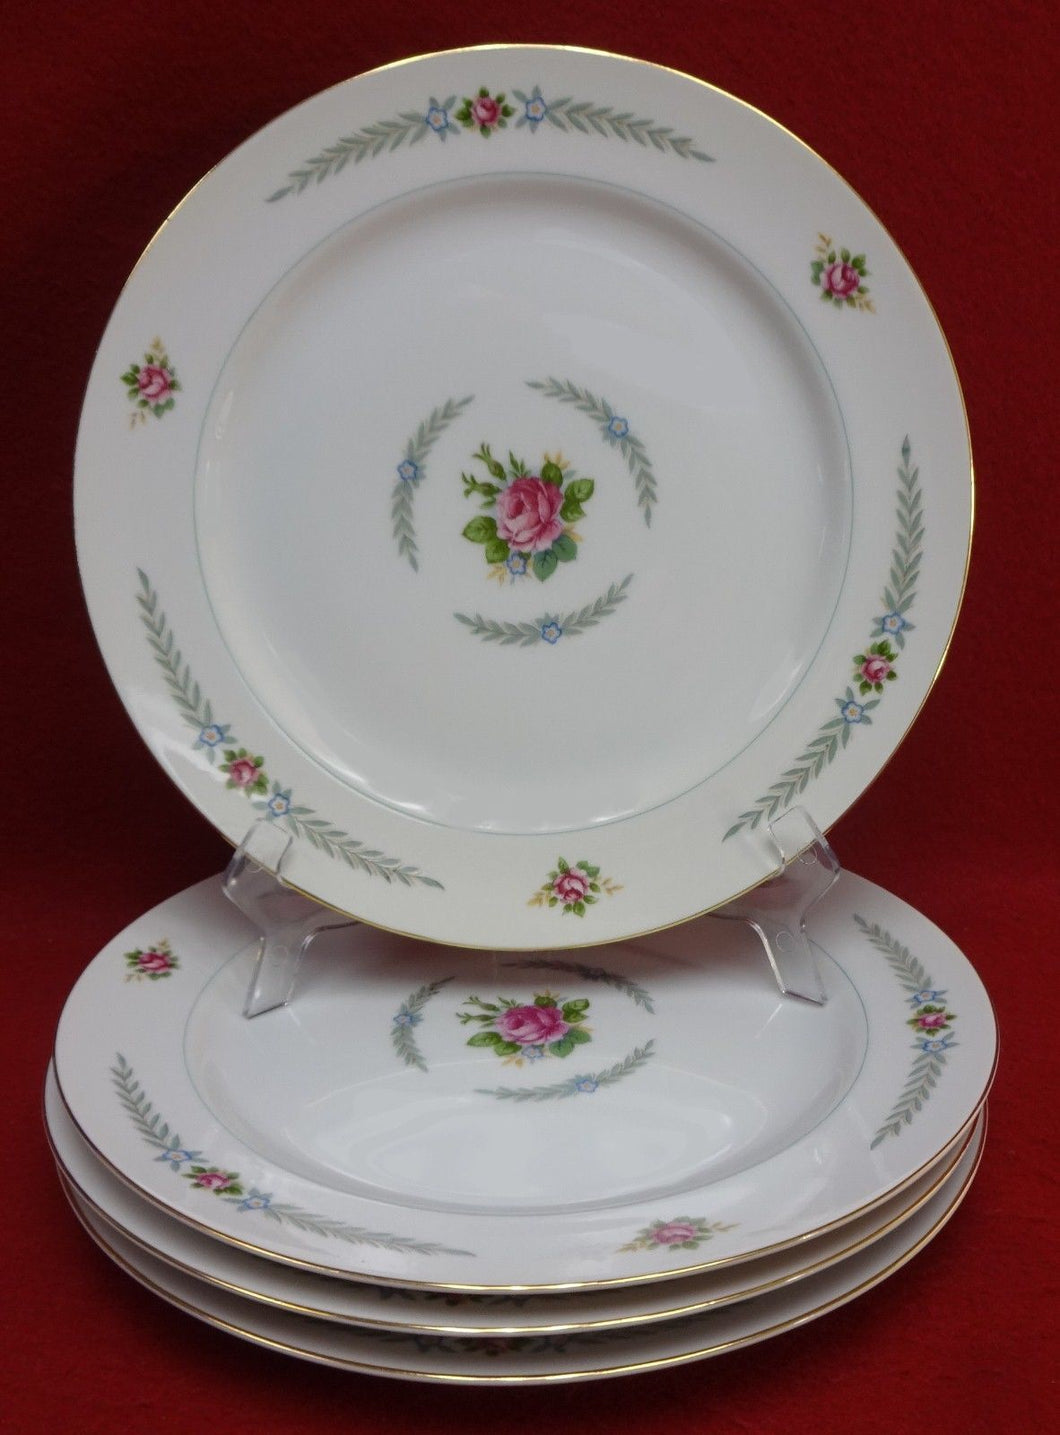 HOLLY china PEACOCK (Narumi Occupied Japan) pattern Set 4 Dinner Plates 10-1/8